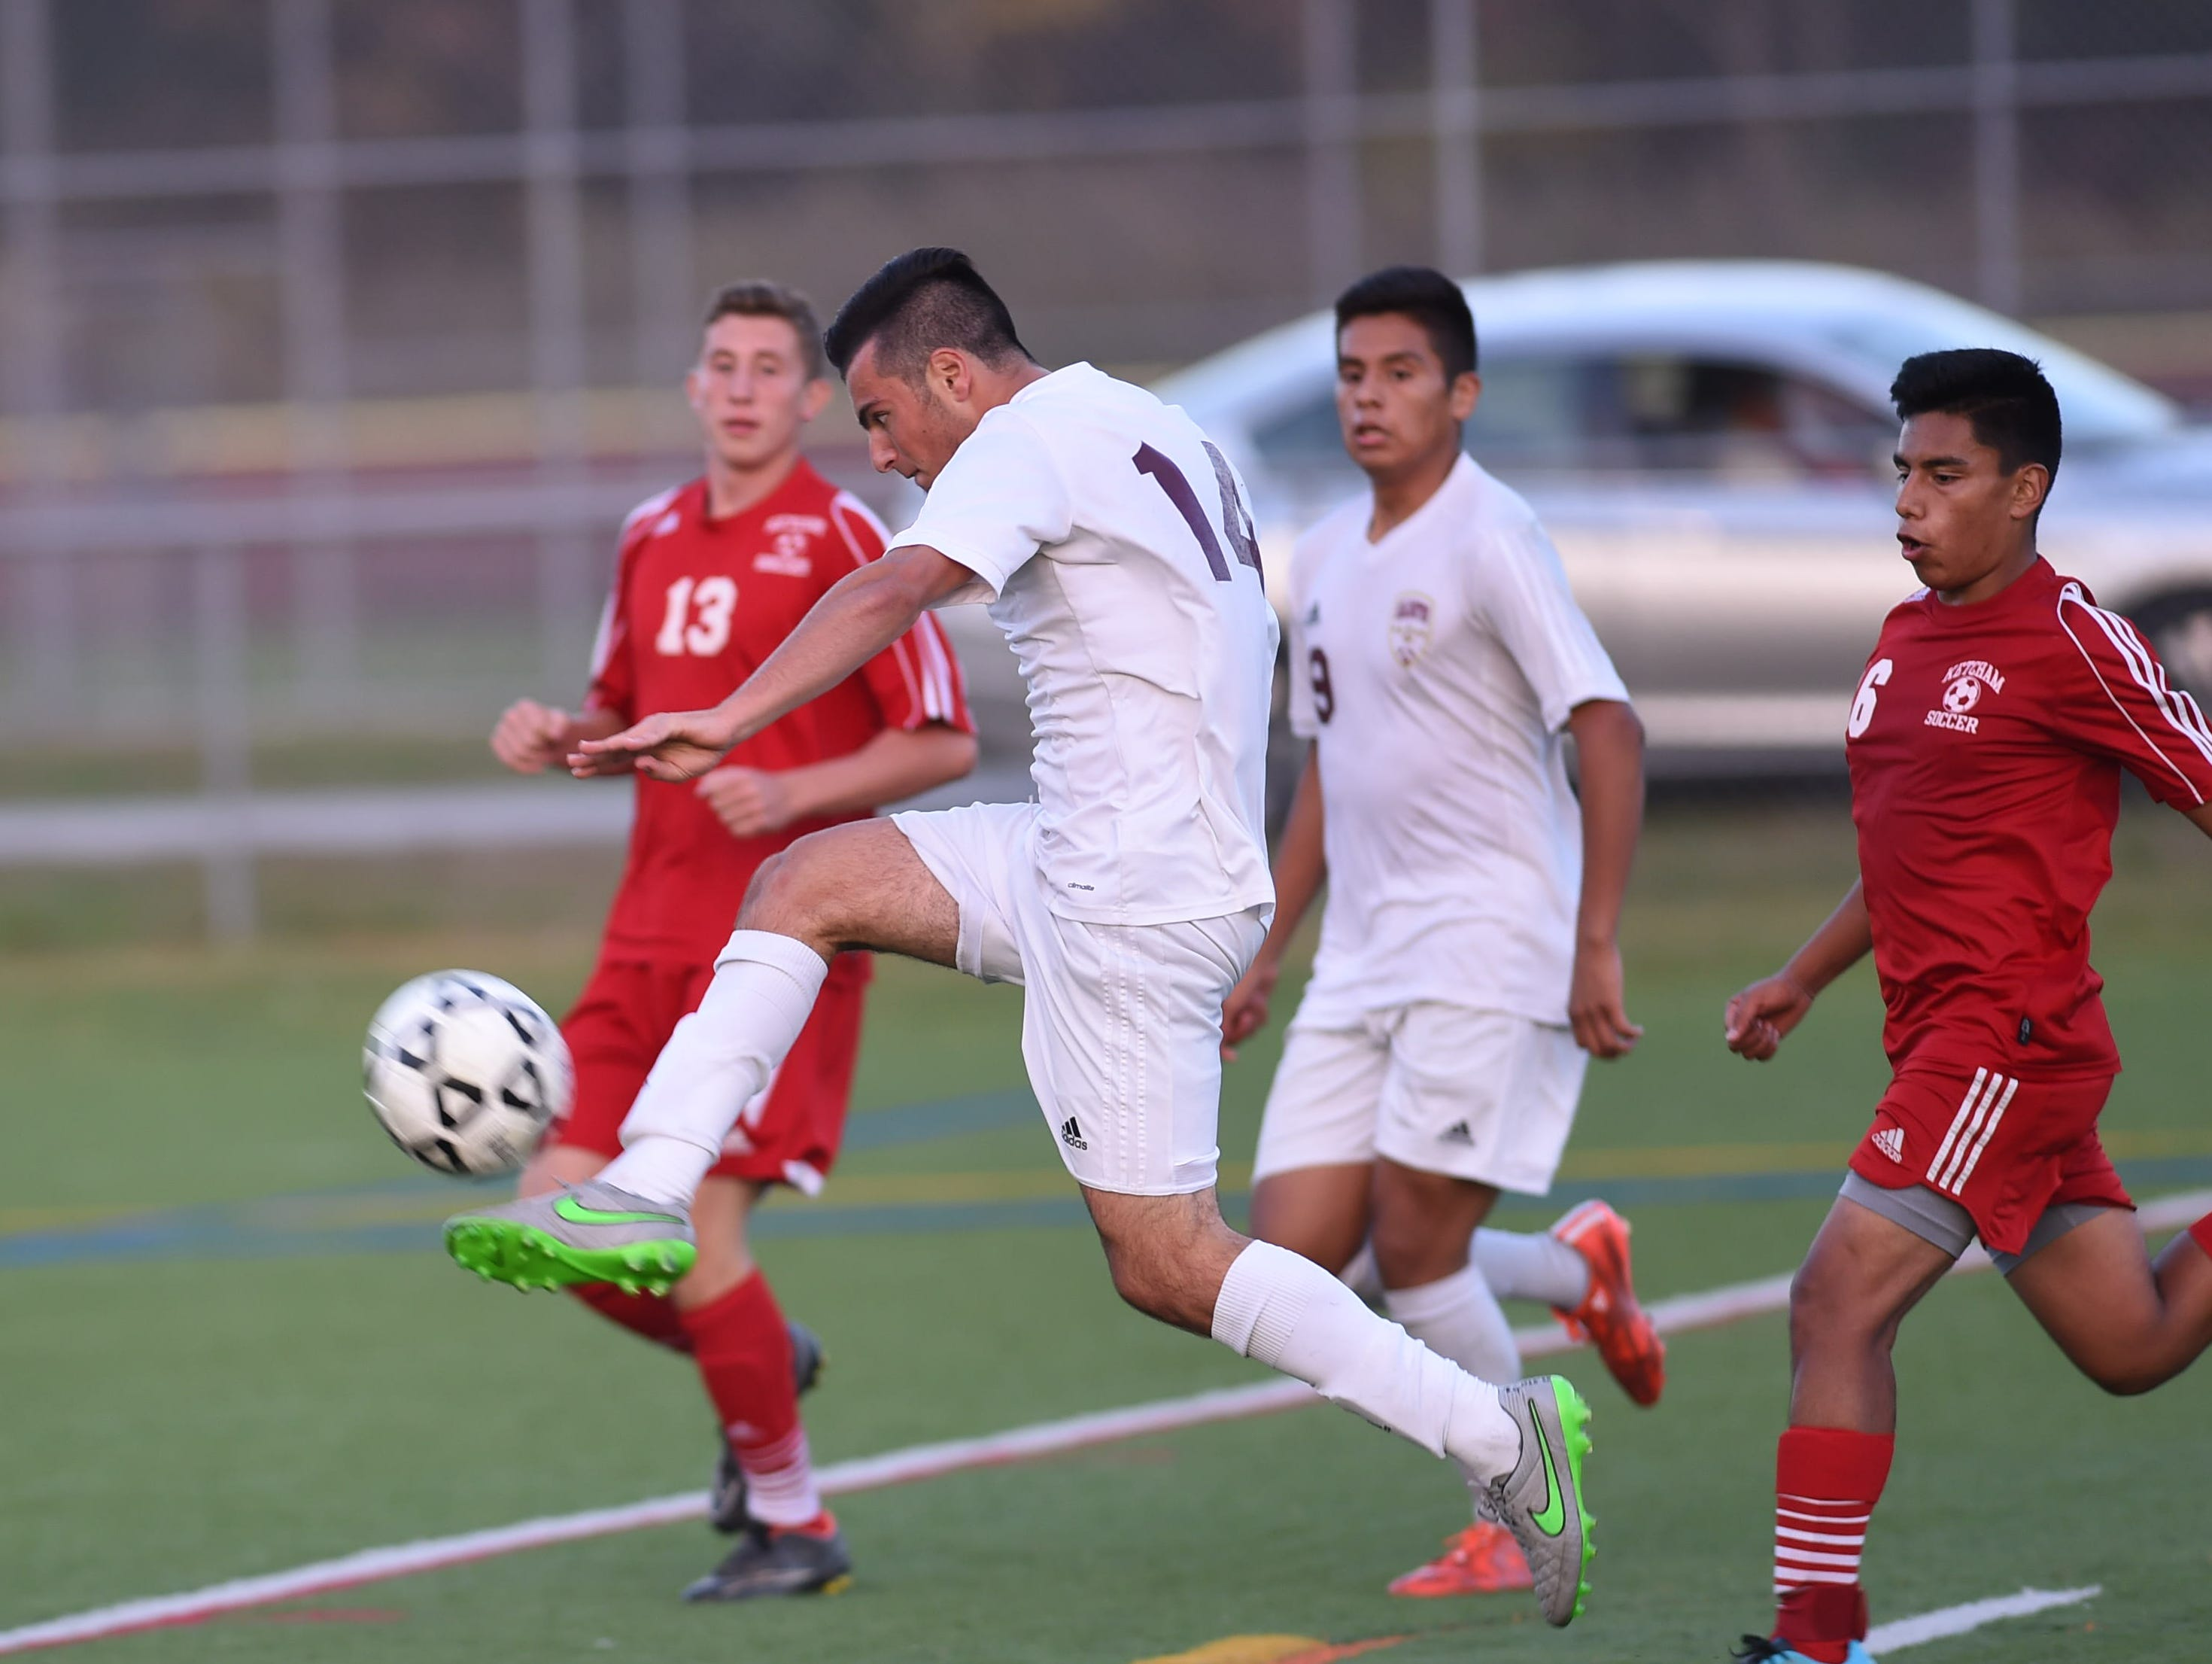 Arlington's Vinny Colantuono takes a shot on goal during Tuesday's game versus Ketcham in LaGrangeville.